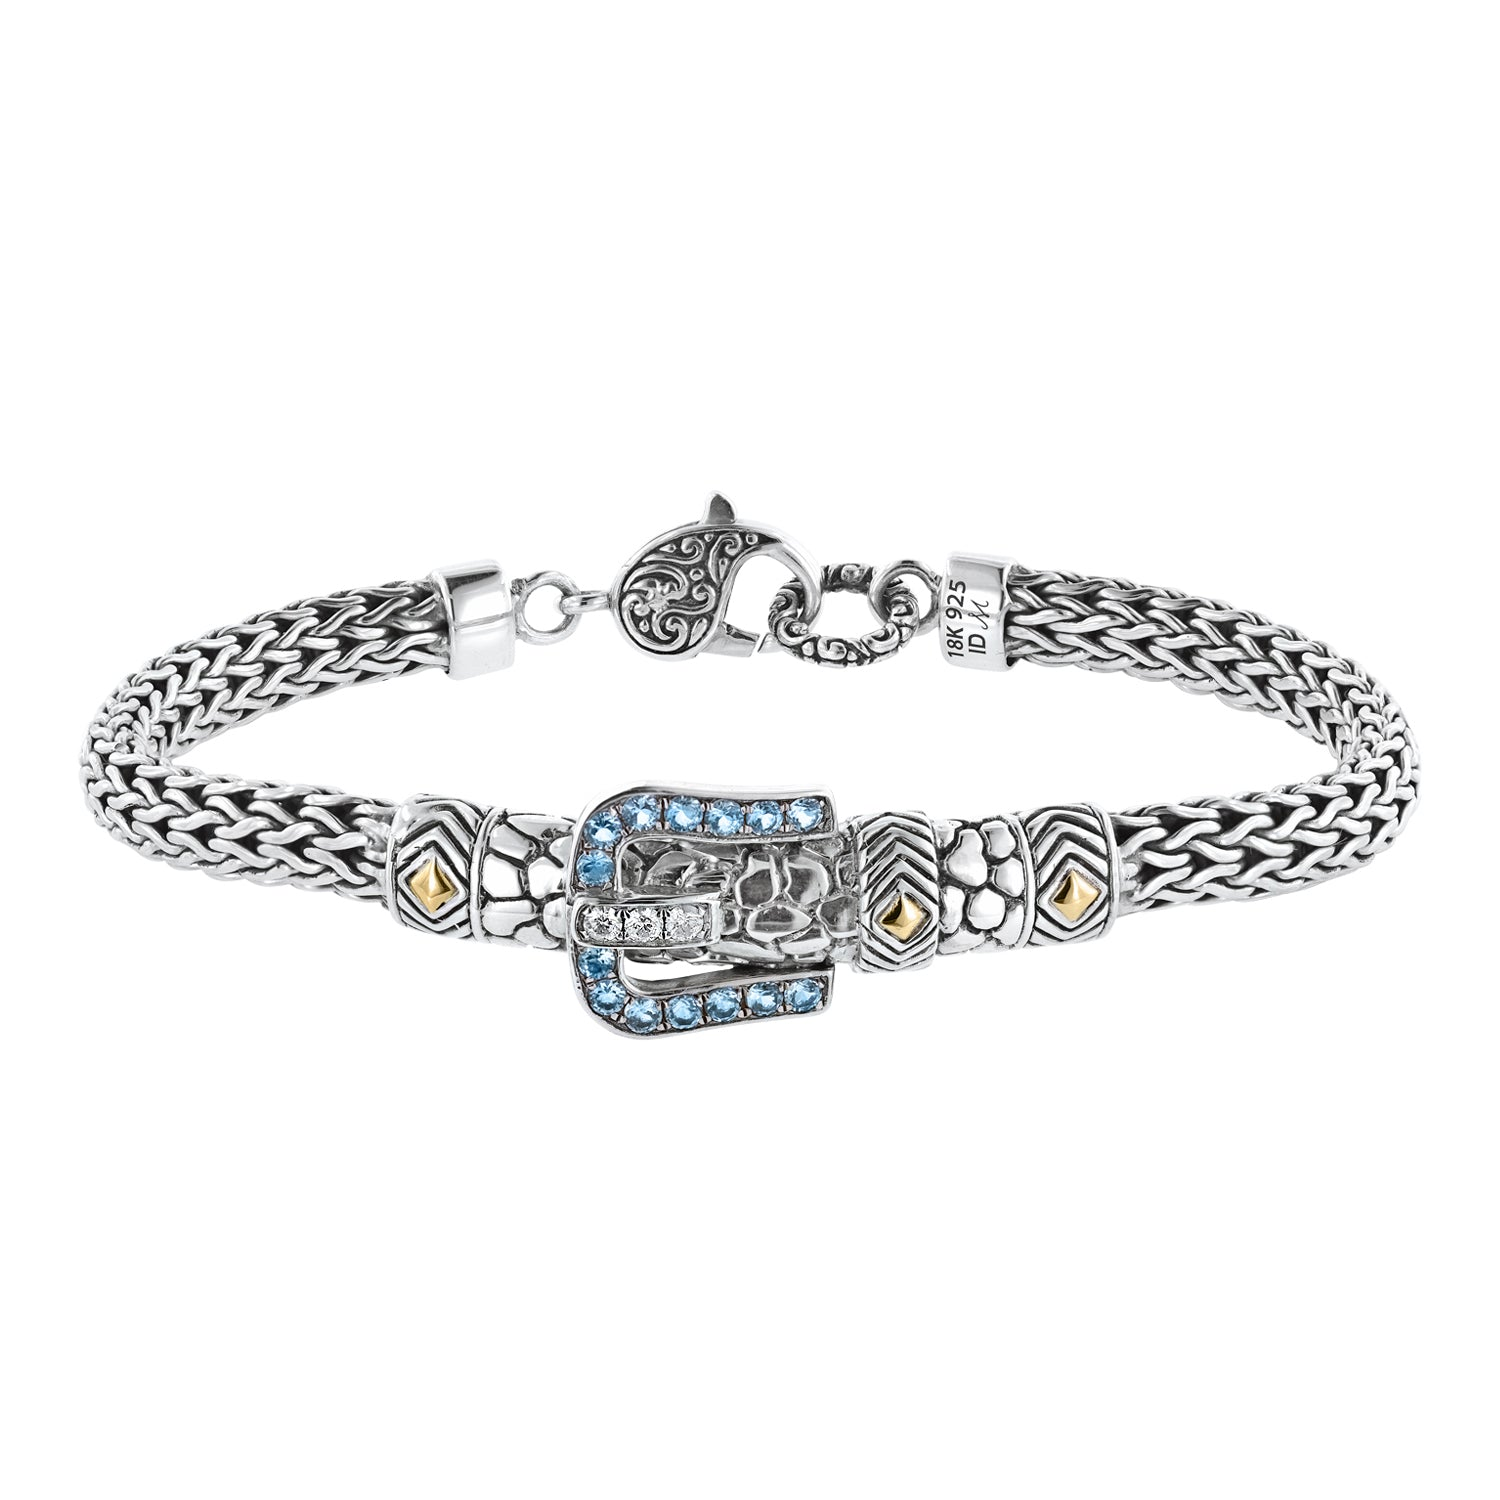 Bali Sterling Silver London Blue Topaz and White Zircon Buckle Rope Bracelet with Lobster Clasp and 18K Gold Accents